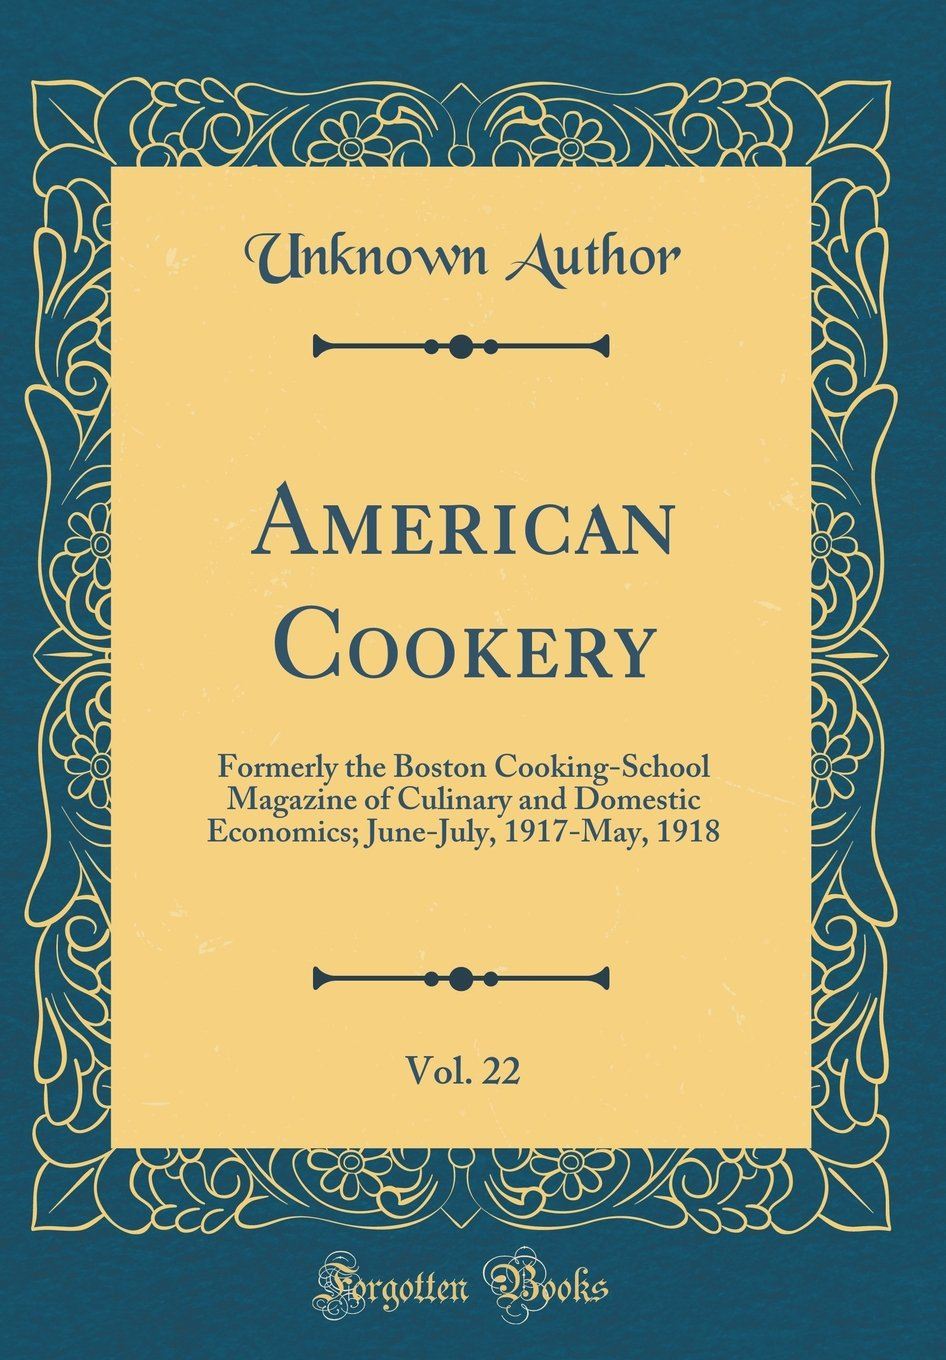 American Cookery, Vol. 22: Formerly the Boston Cooking-School Magazine of Culinary and Domestic Economics; June-July, 1917-May, 1918 (Classic Reprint) PDF